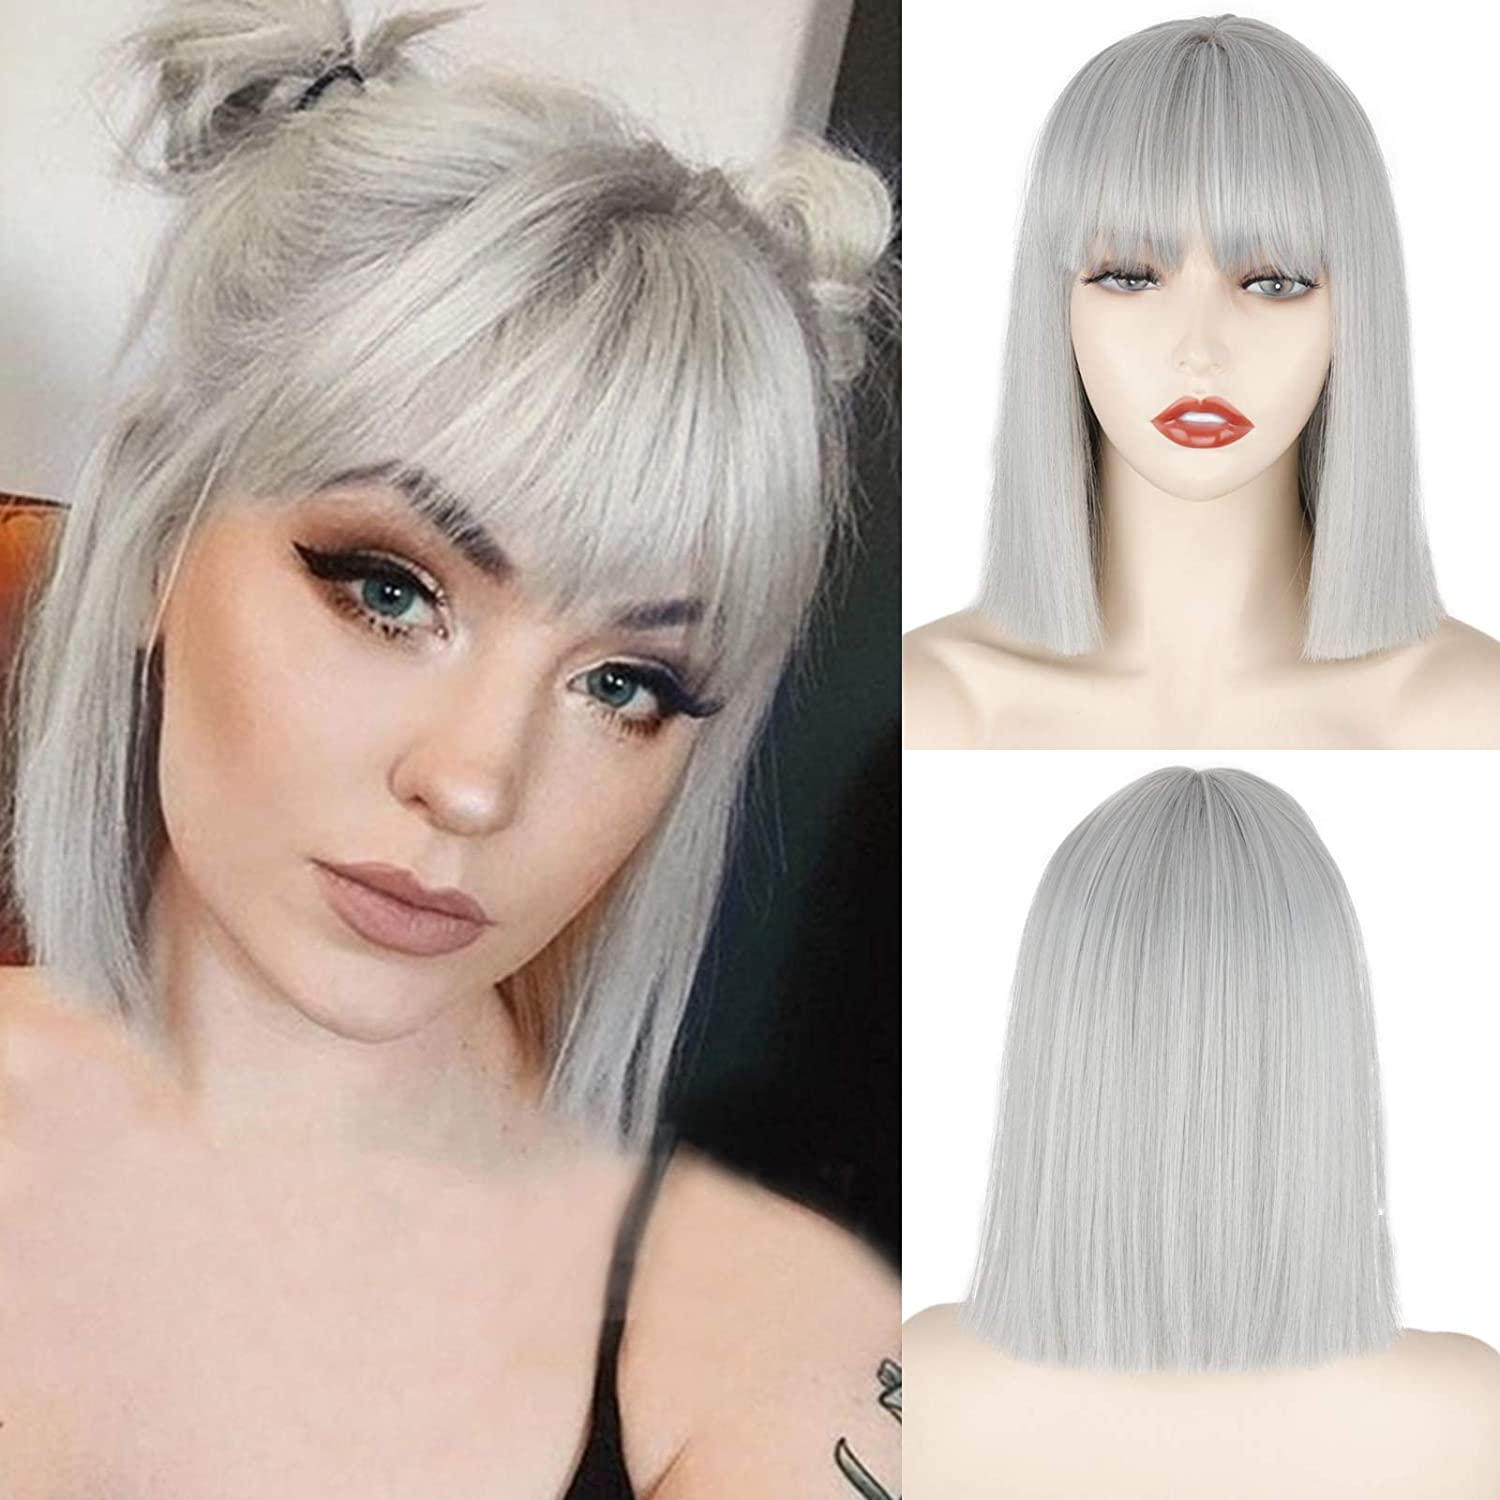 Short Silver Gray Bob Wigs with Bangs,Short Straight Bob Silver Grey Wigs for Women,Natural Looking Cosplay Daily Party Wig